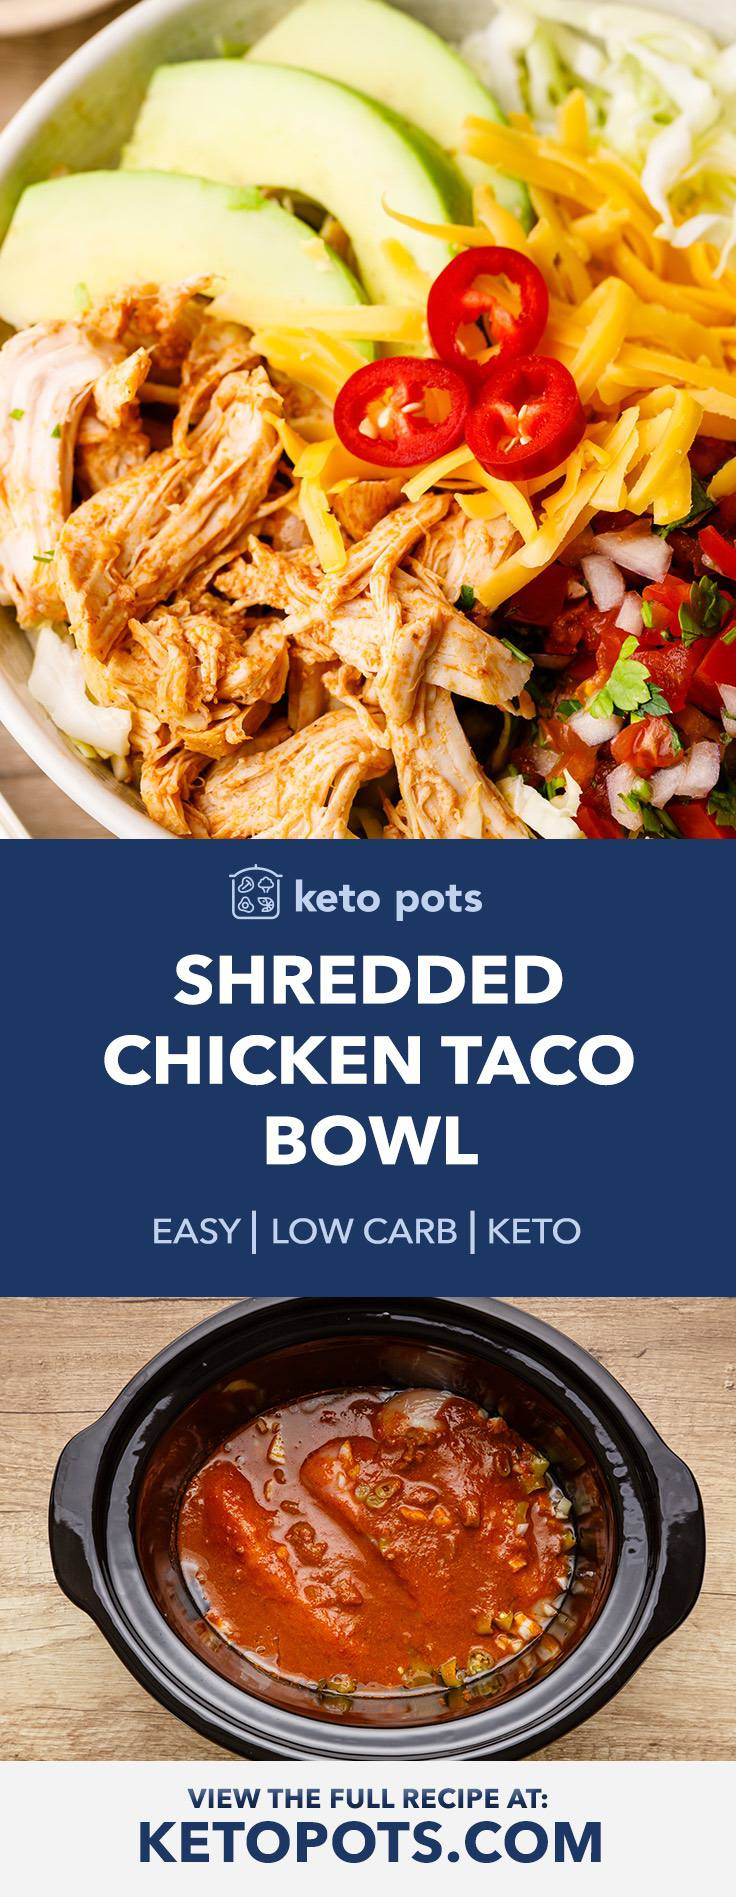 Low Carb Shredded Chicken Taco Bowl with Shredded Cabbage